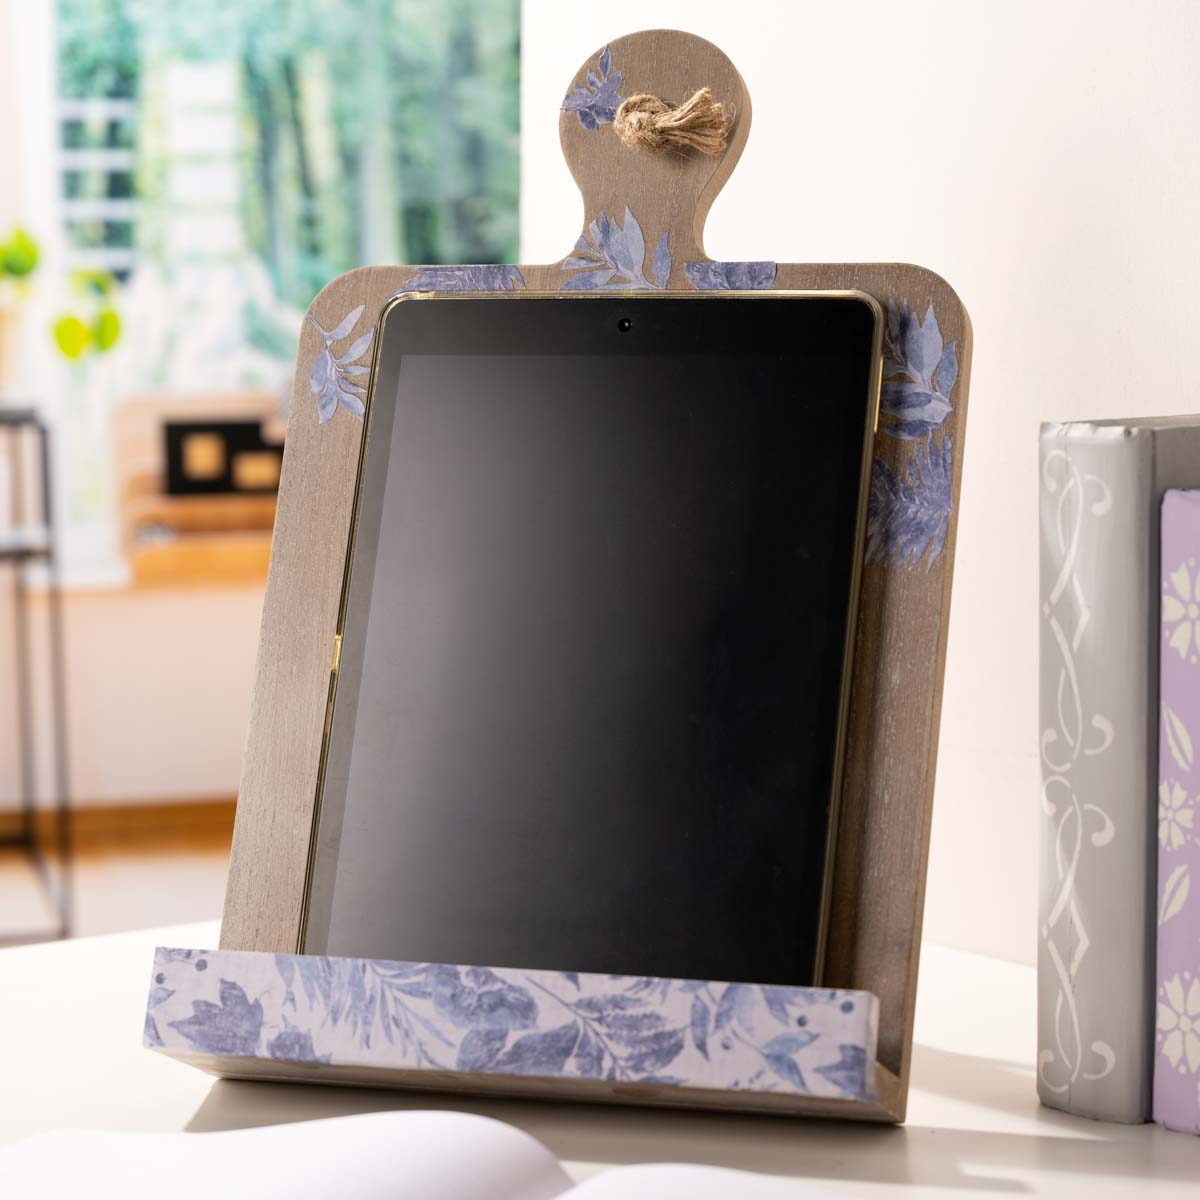 Plaid ® Wood Surfaces - Book/Tablet Stand Whitewash - 56716